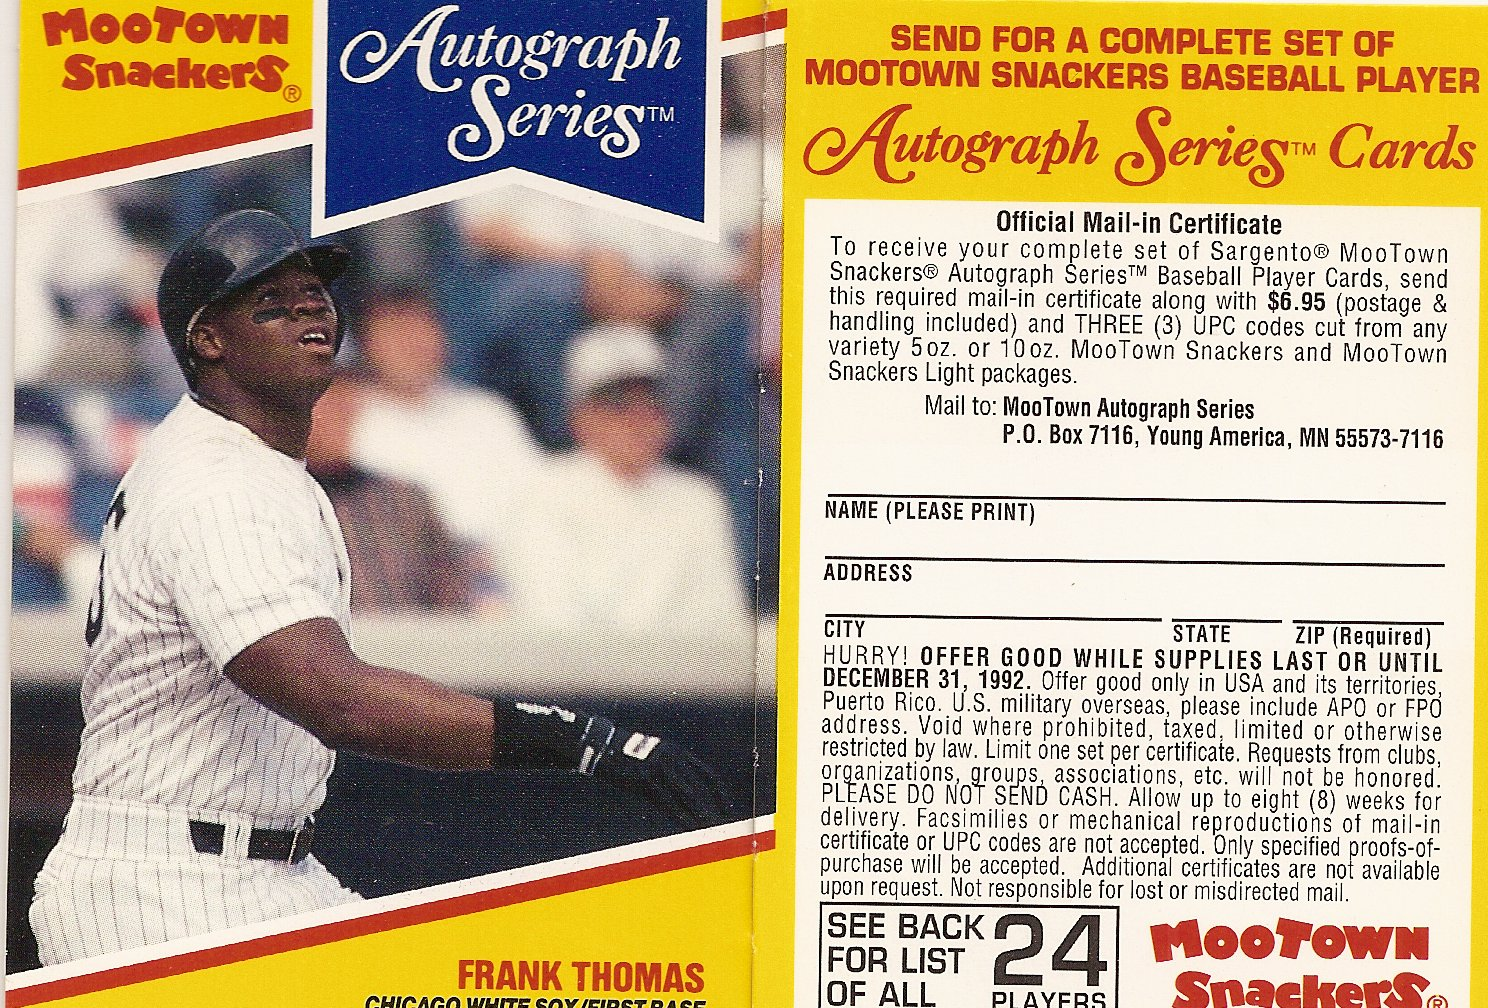 1992 Mootown Snackers with Tab (Frank Thomas)